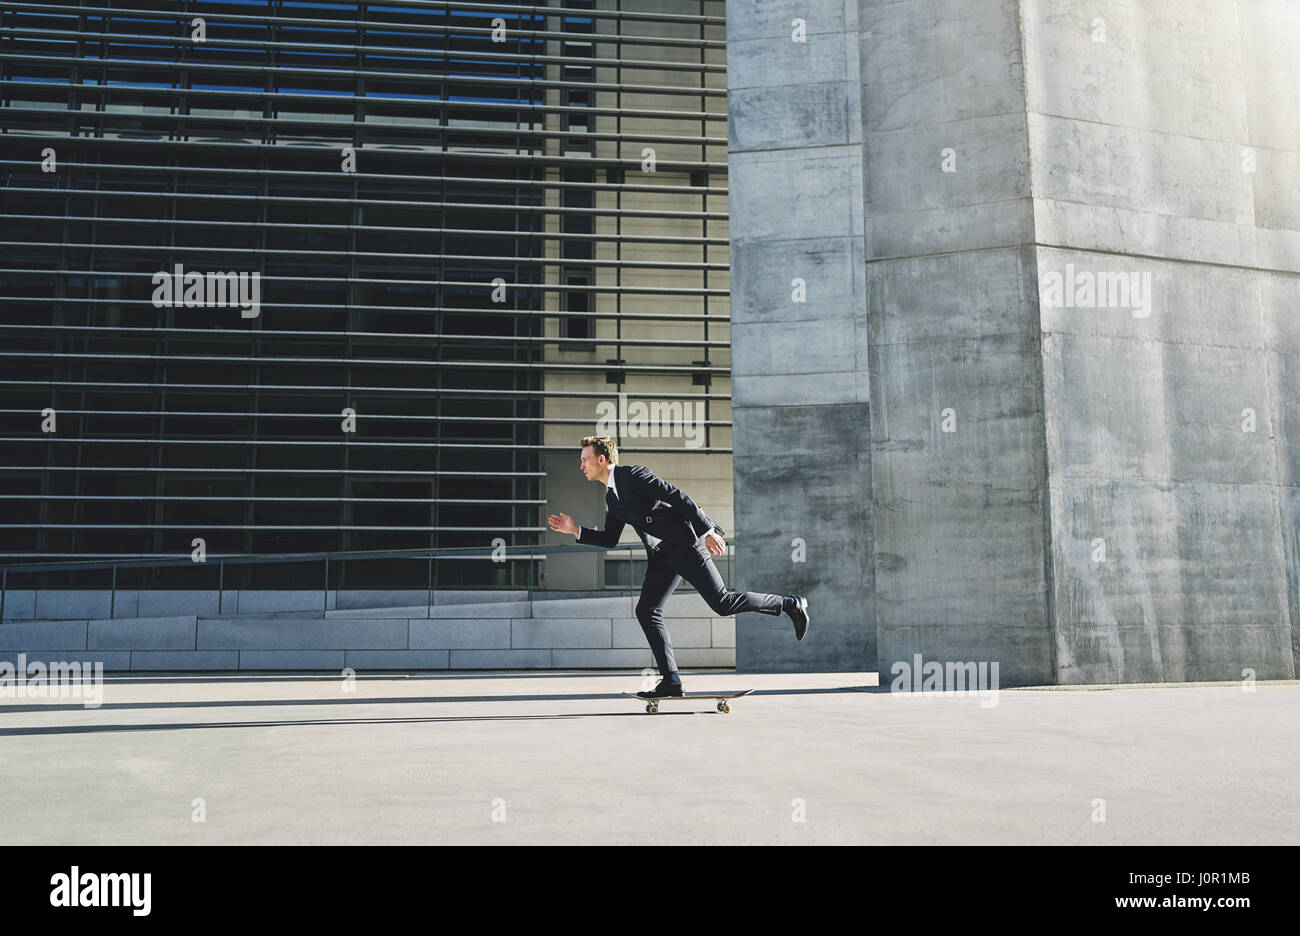 Businessman in a suit moving with high speed on a skateboard - Stock Image